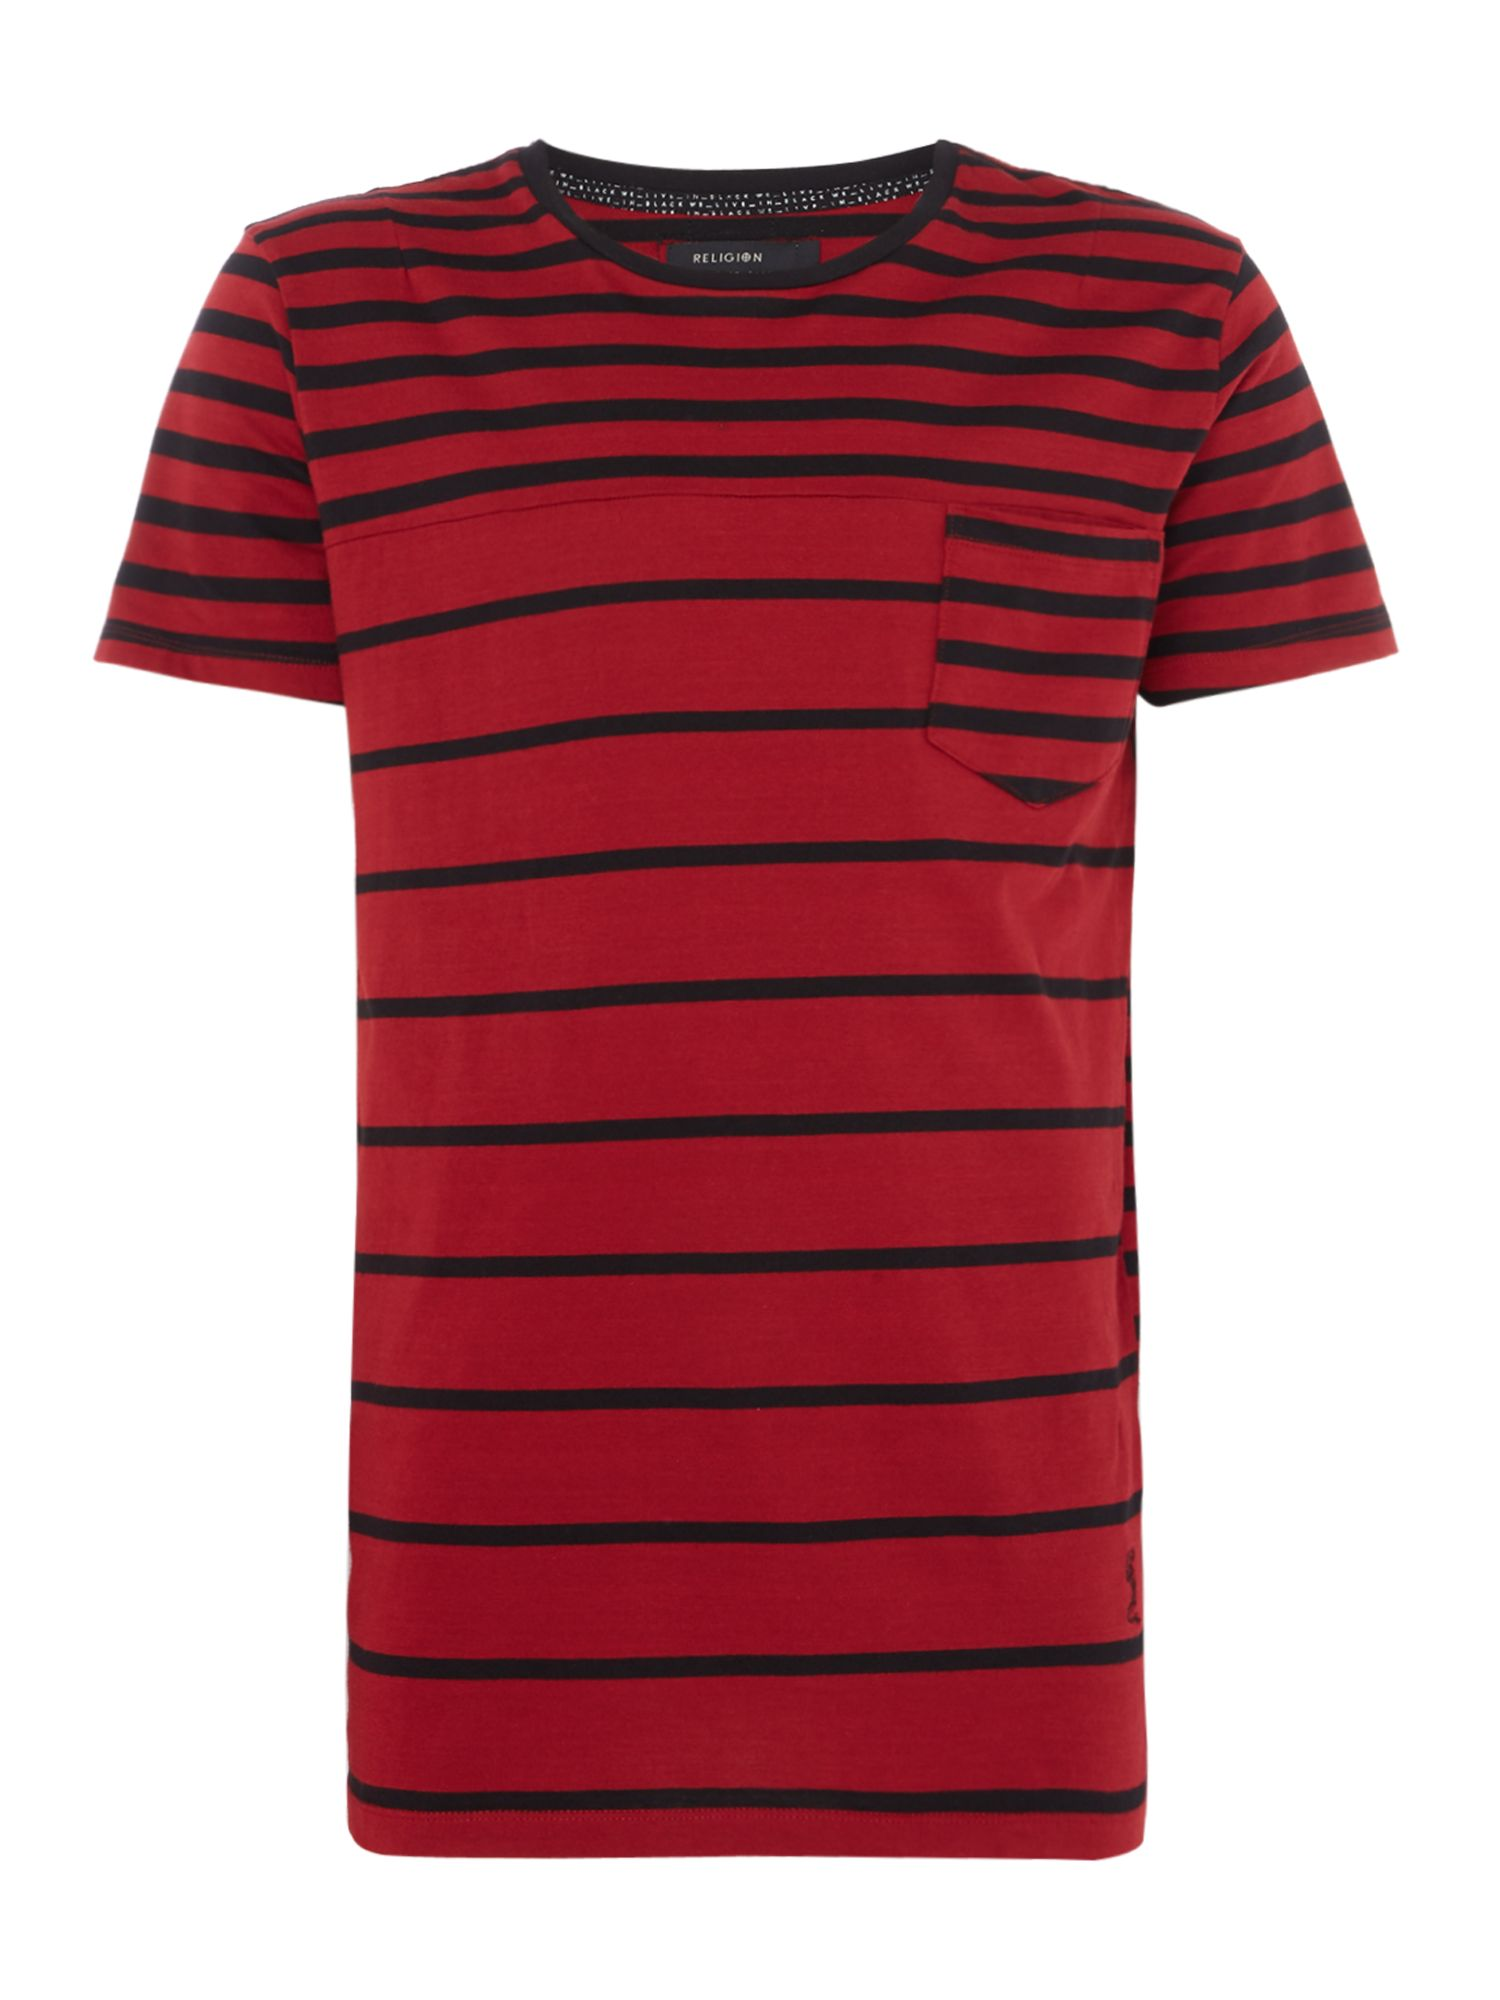 Men's Religion Striped Pocket Detail T-Shirt, Red